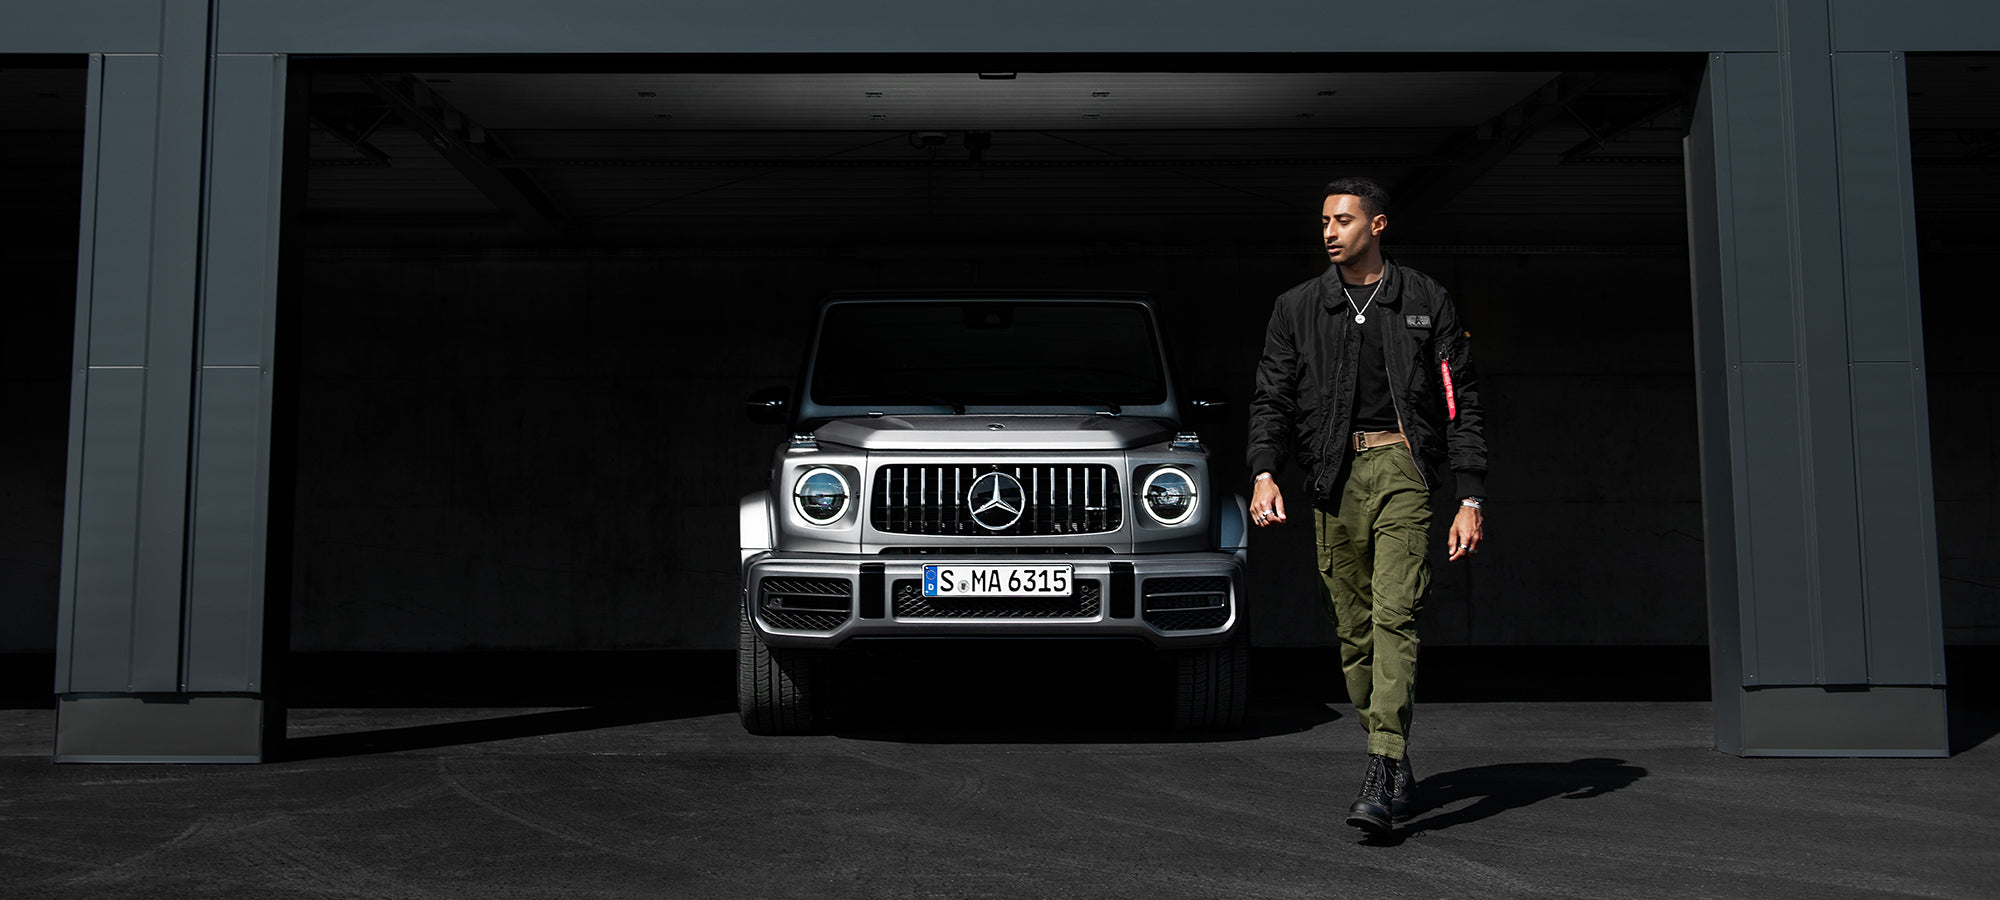 Rahul Patel Collection 925 Sterling Silver Jewellery Mercedes Benz GClass G63 Graz Austria Alpha Industries Dr Martens Tag Heuer